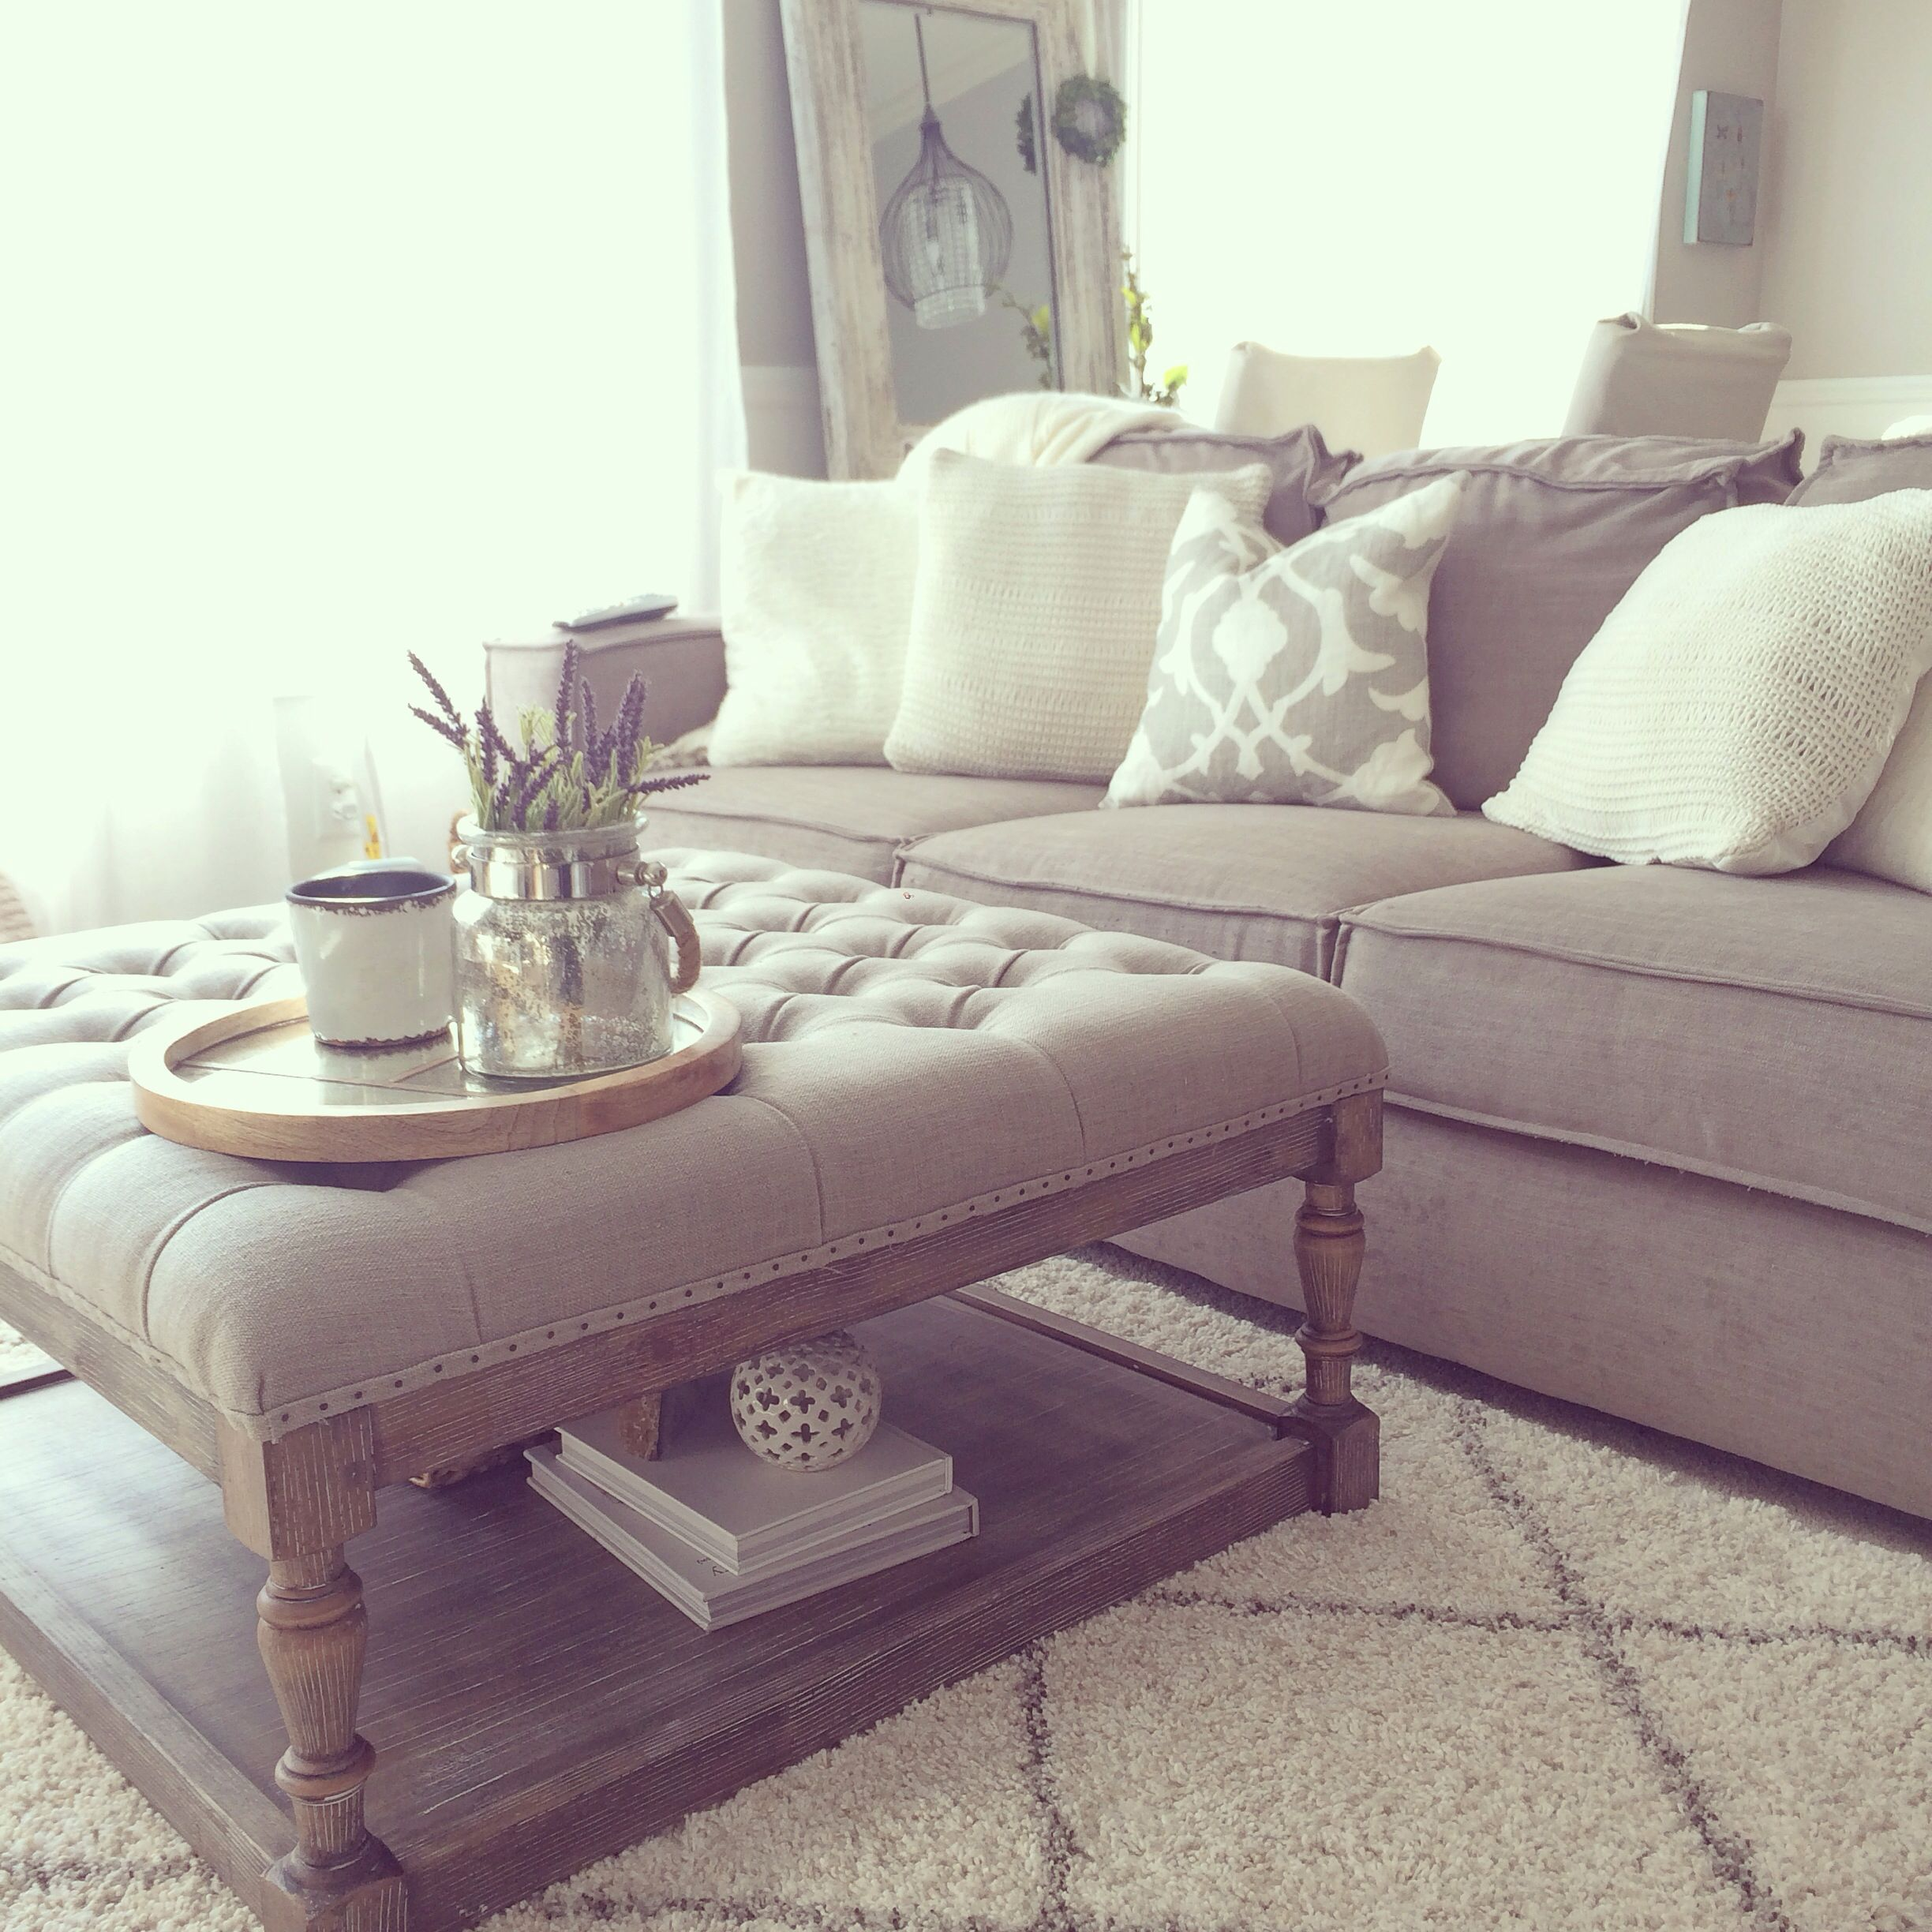 Overstock tufted ottoman - living room    DIY & Crafts ...